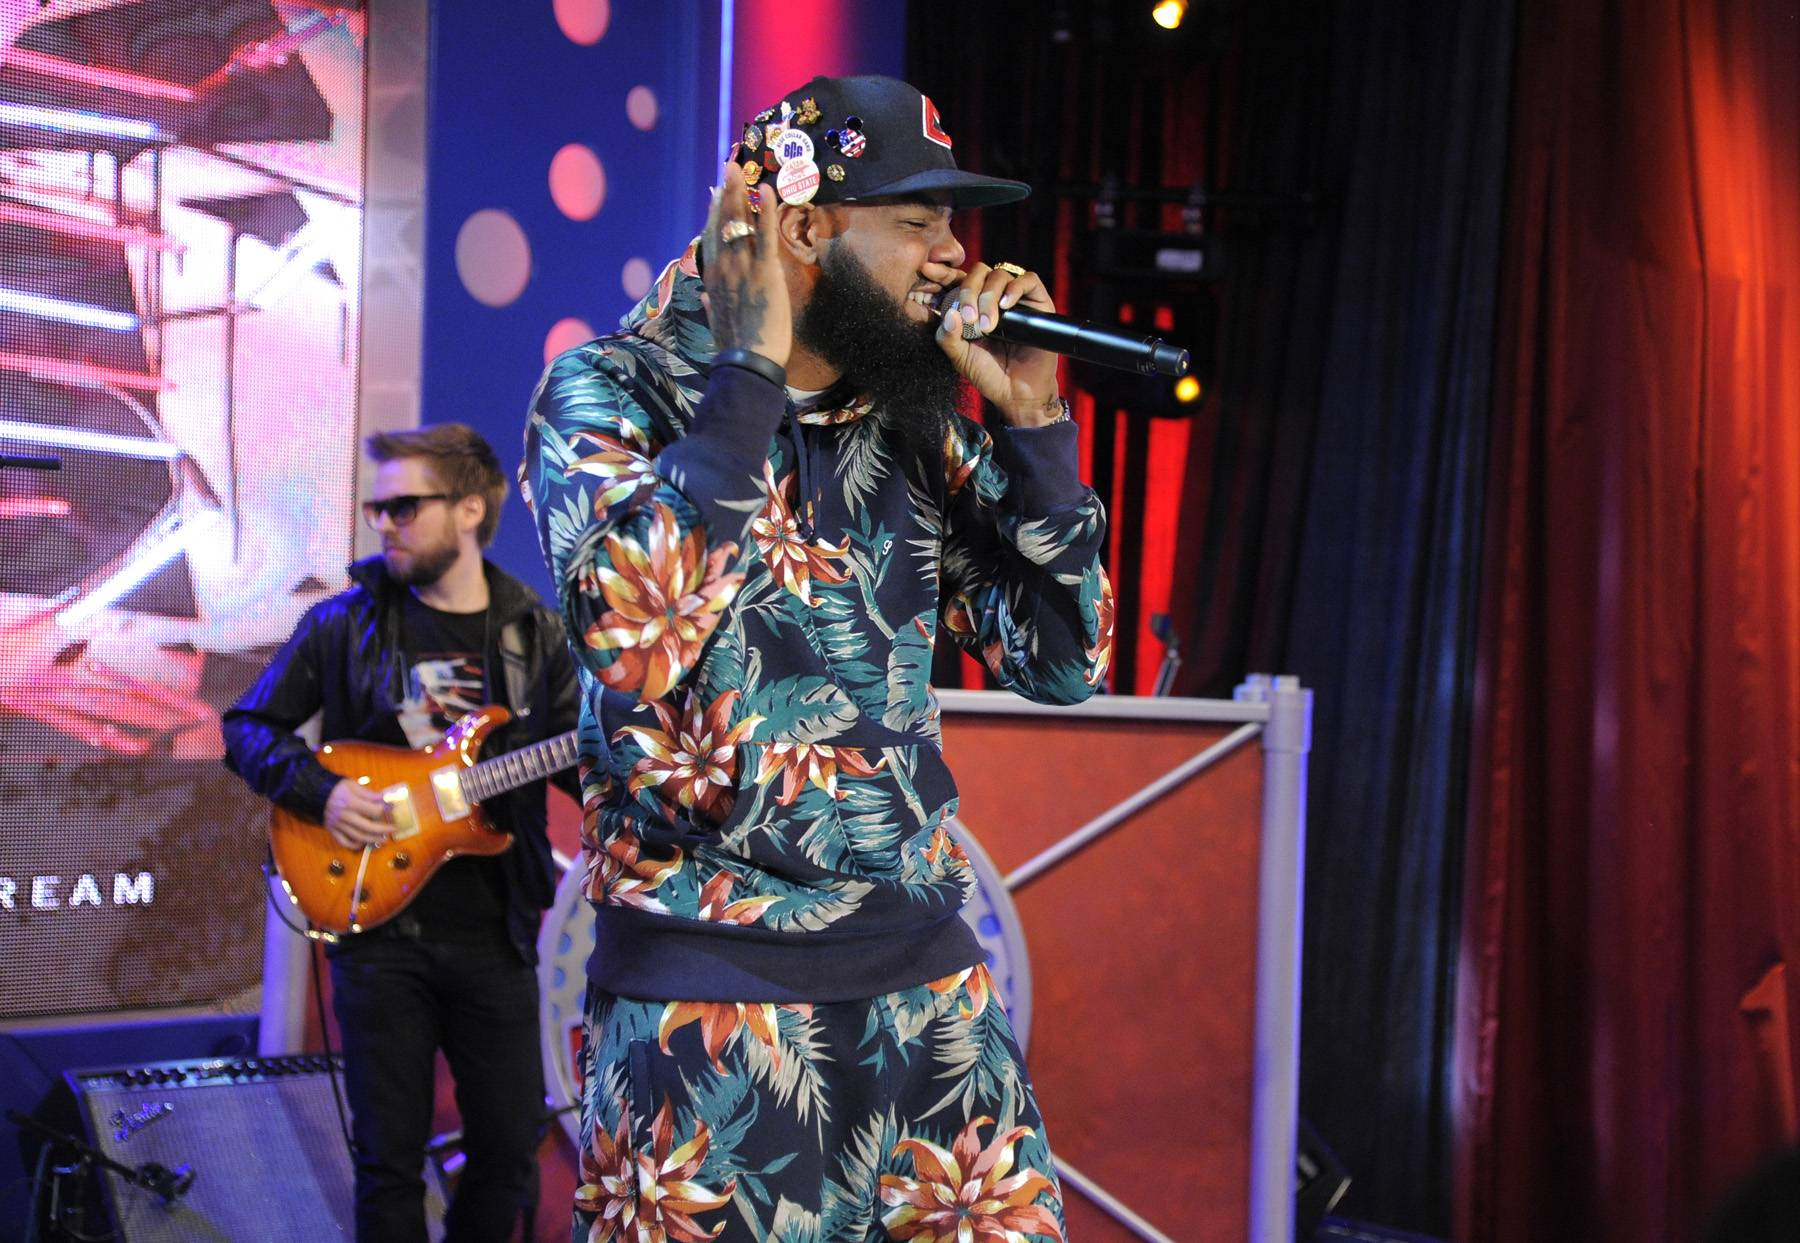 Party Heart - Stalley performs a few of his latest songs for a wild 106 audience.(photo: John Ricard / BET)